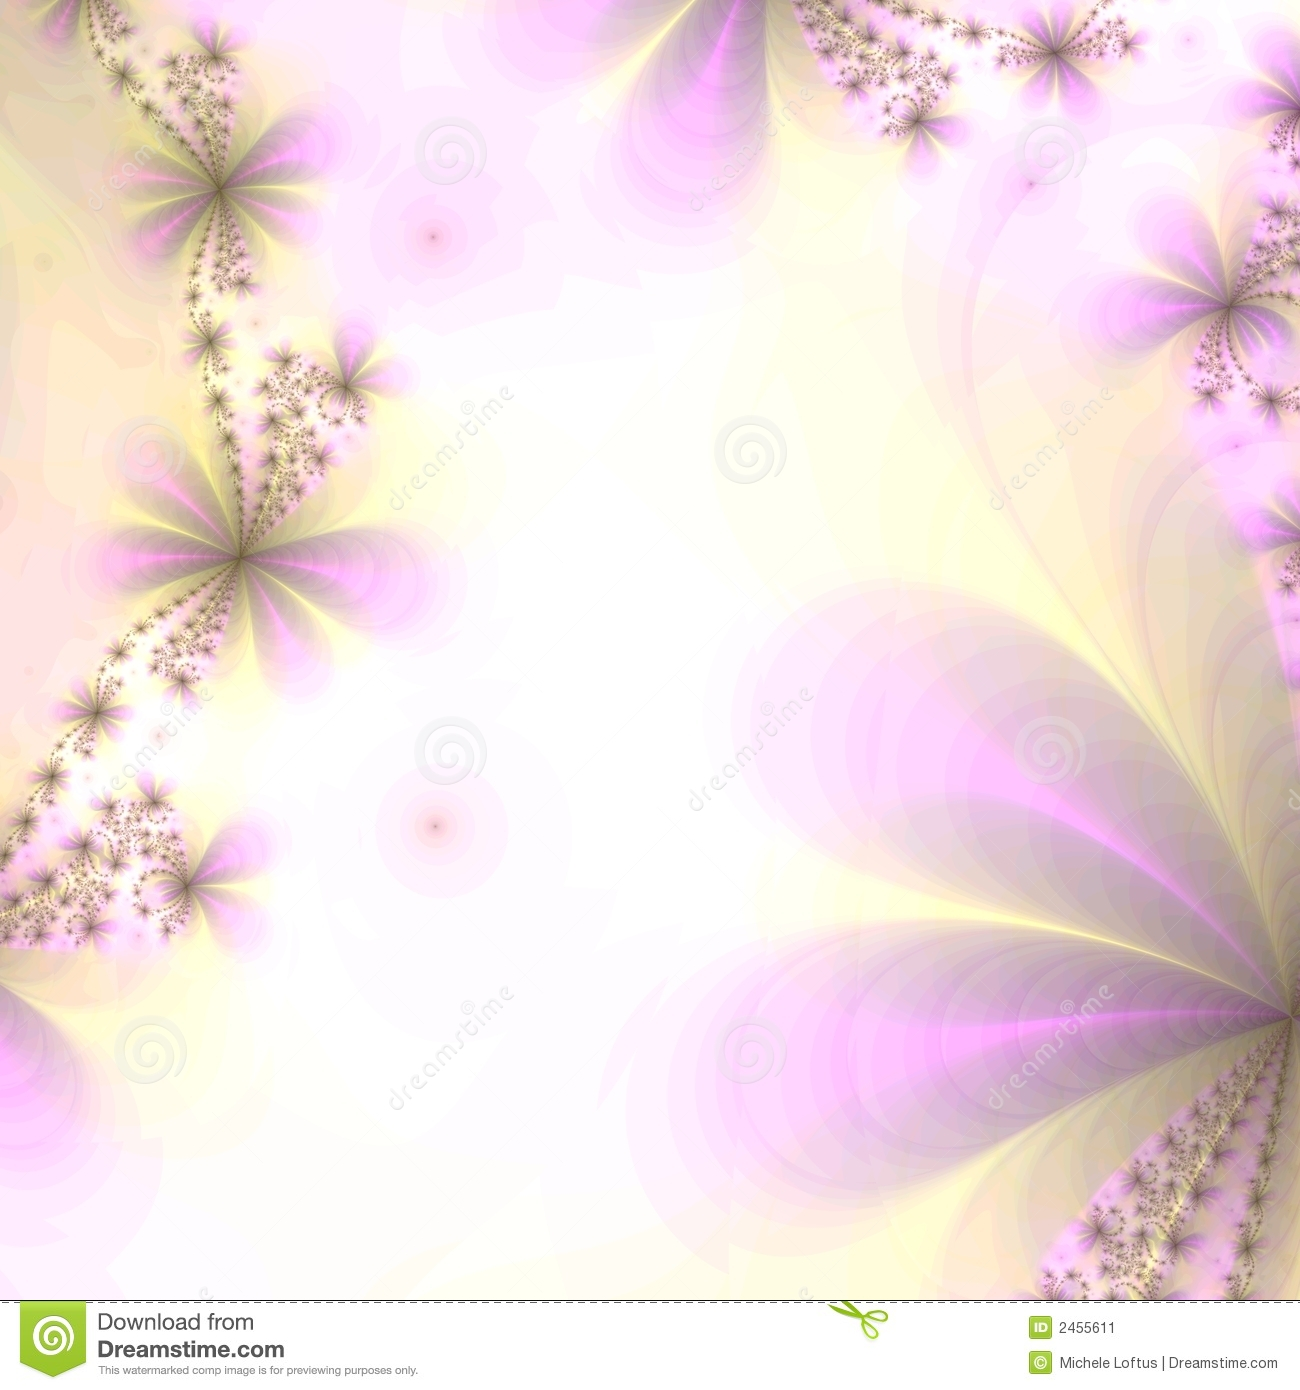 Floral backgrounds for tumblr